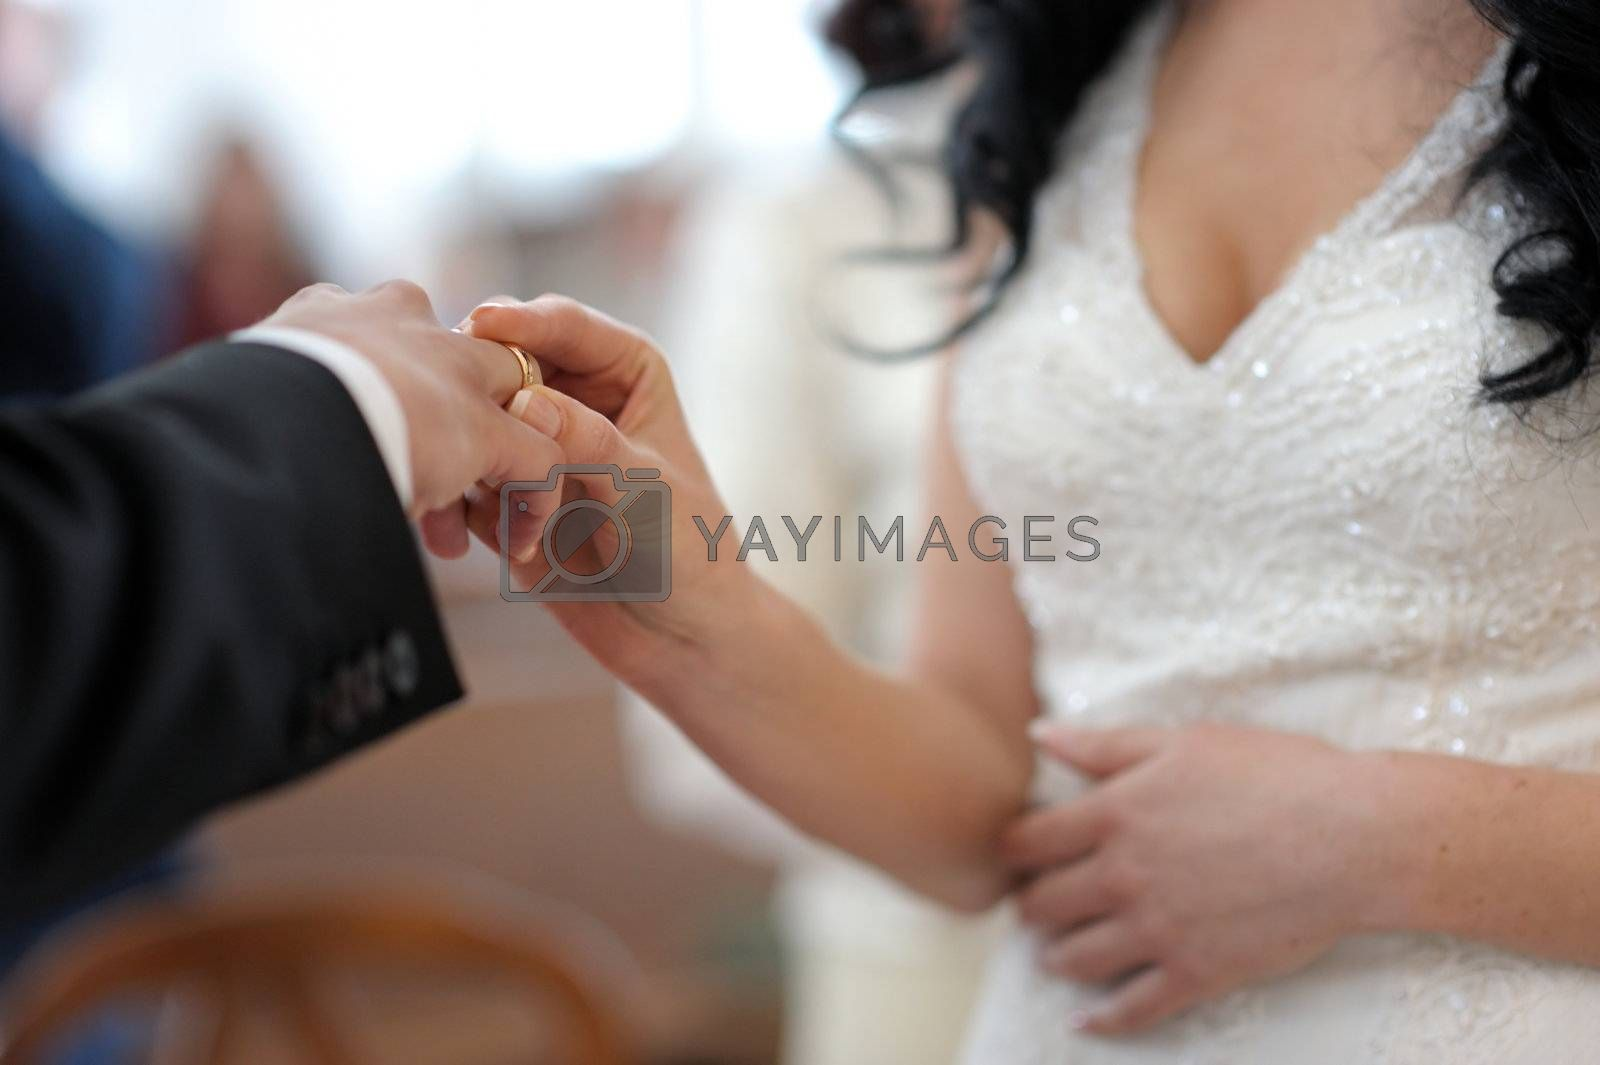 Bride is putting the ring on groom's finger